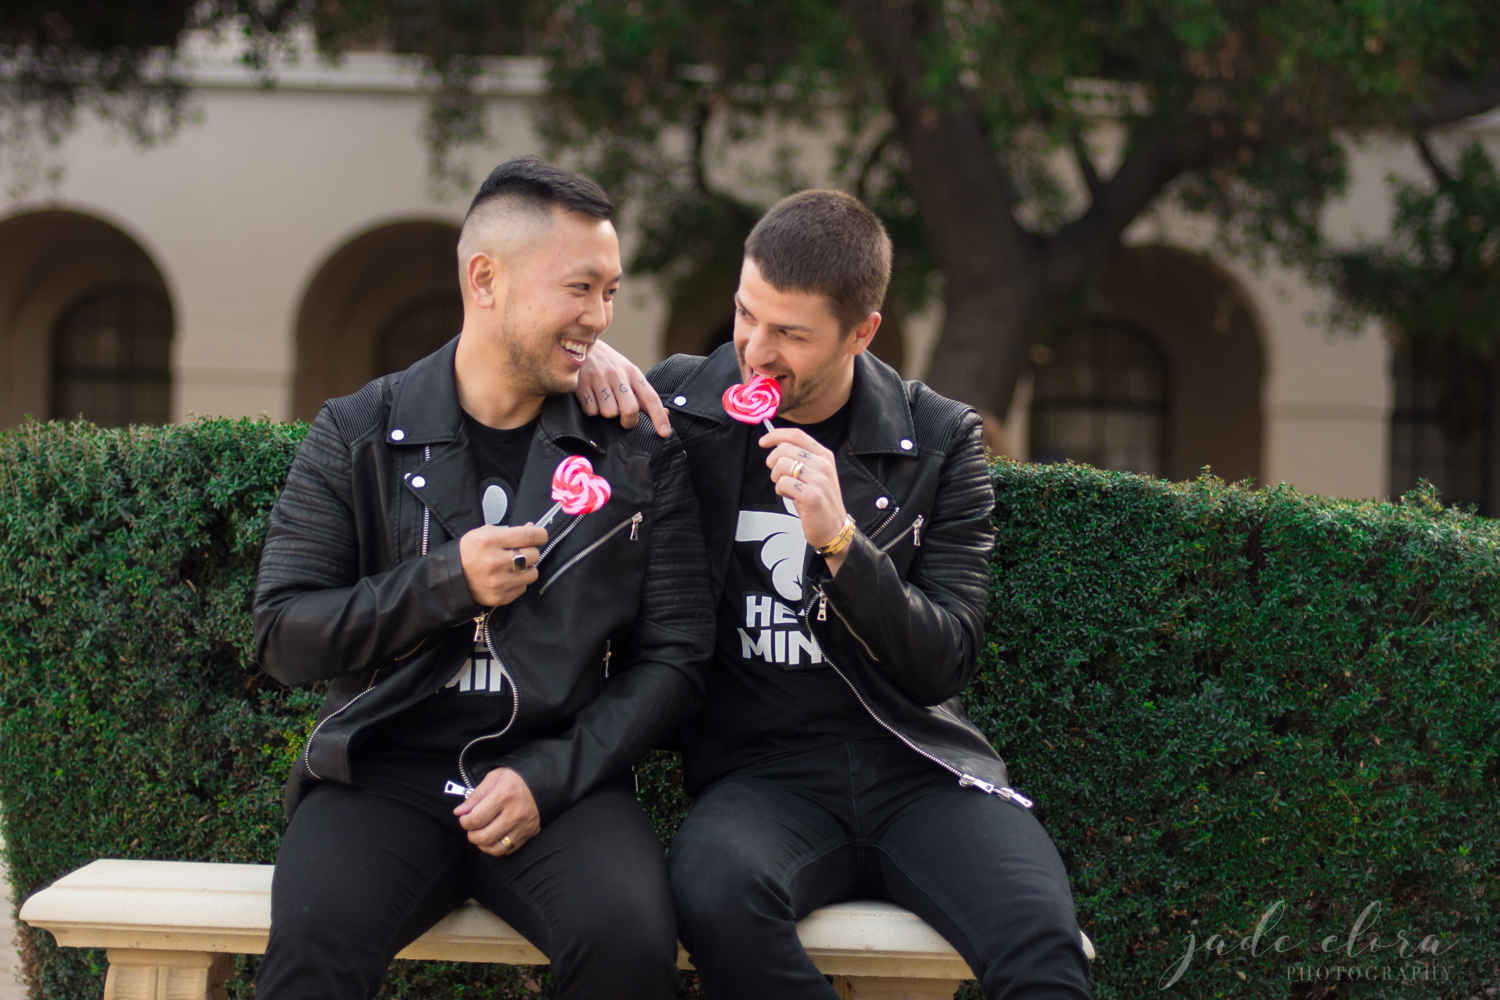 Same-Sex Male Couple Playing with Heart Lollipops